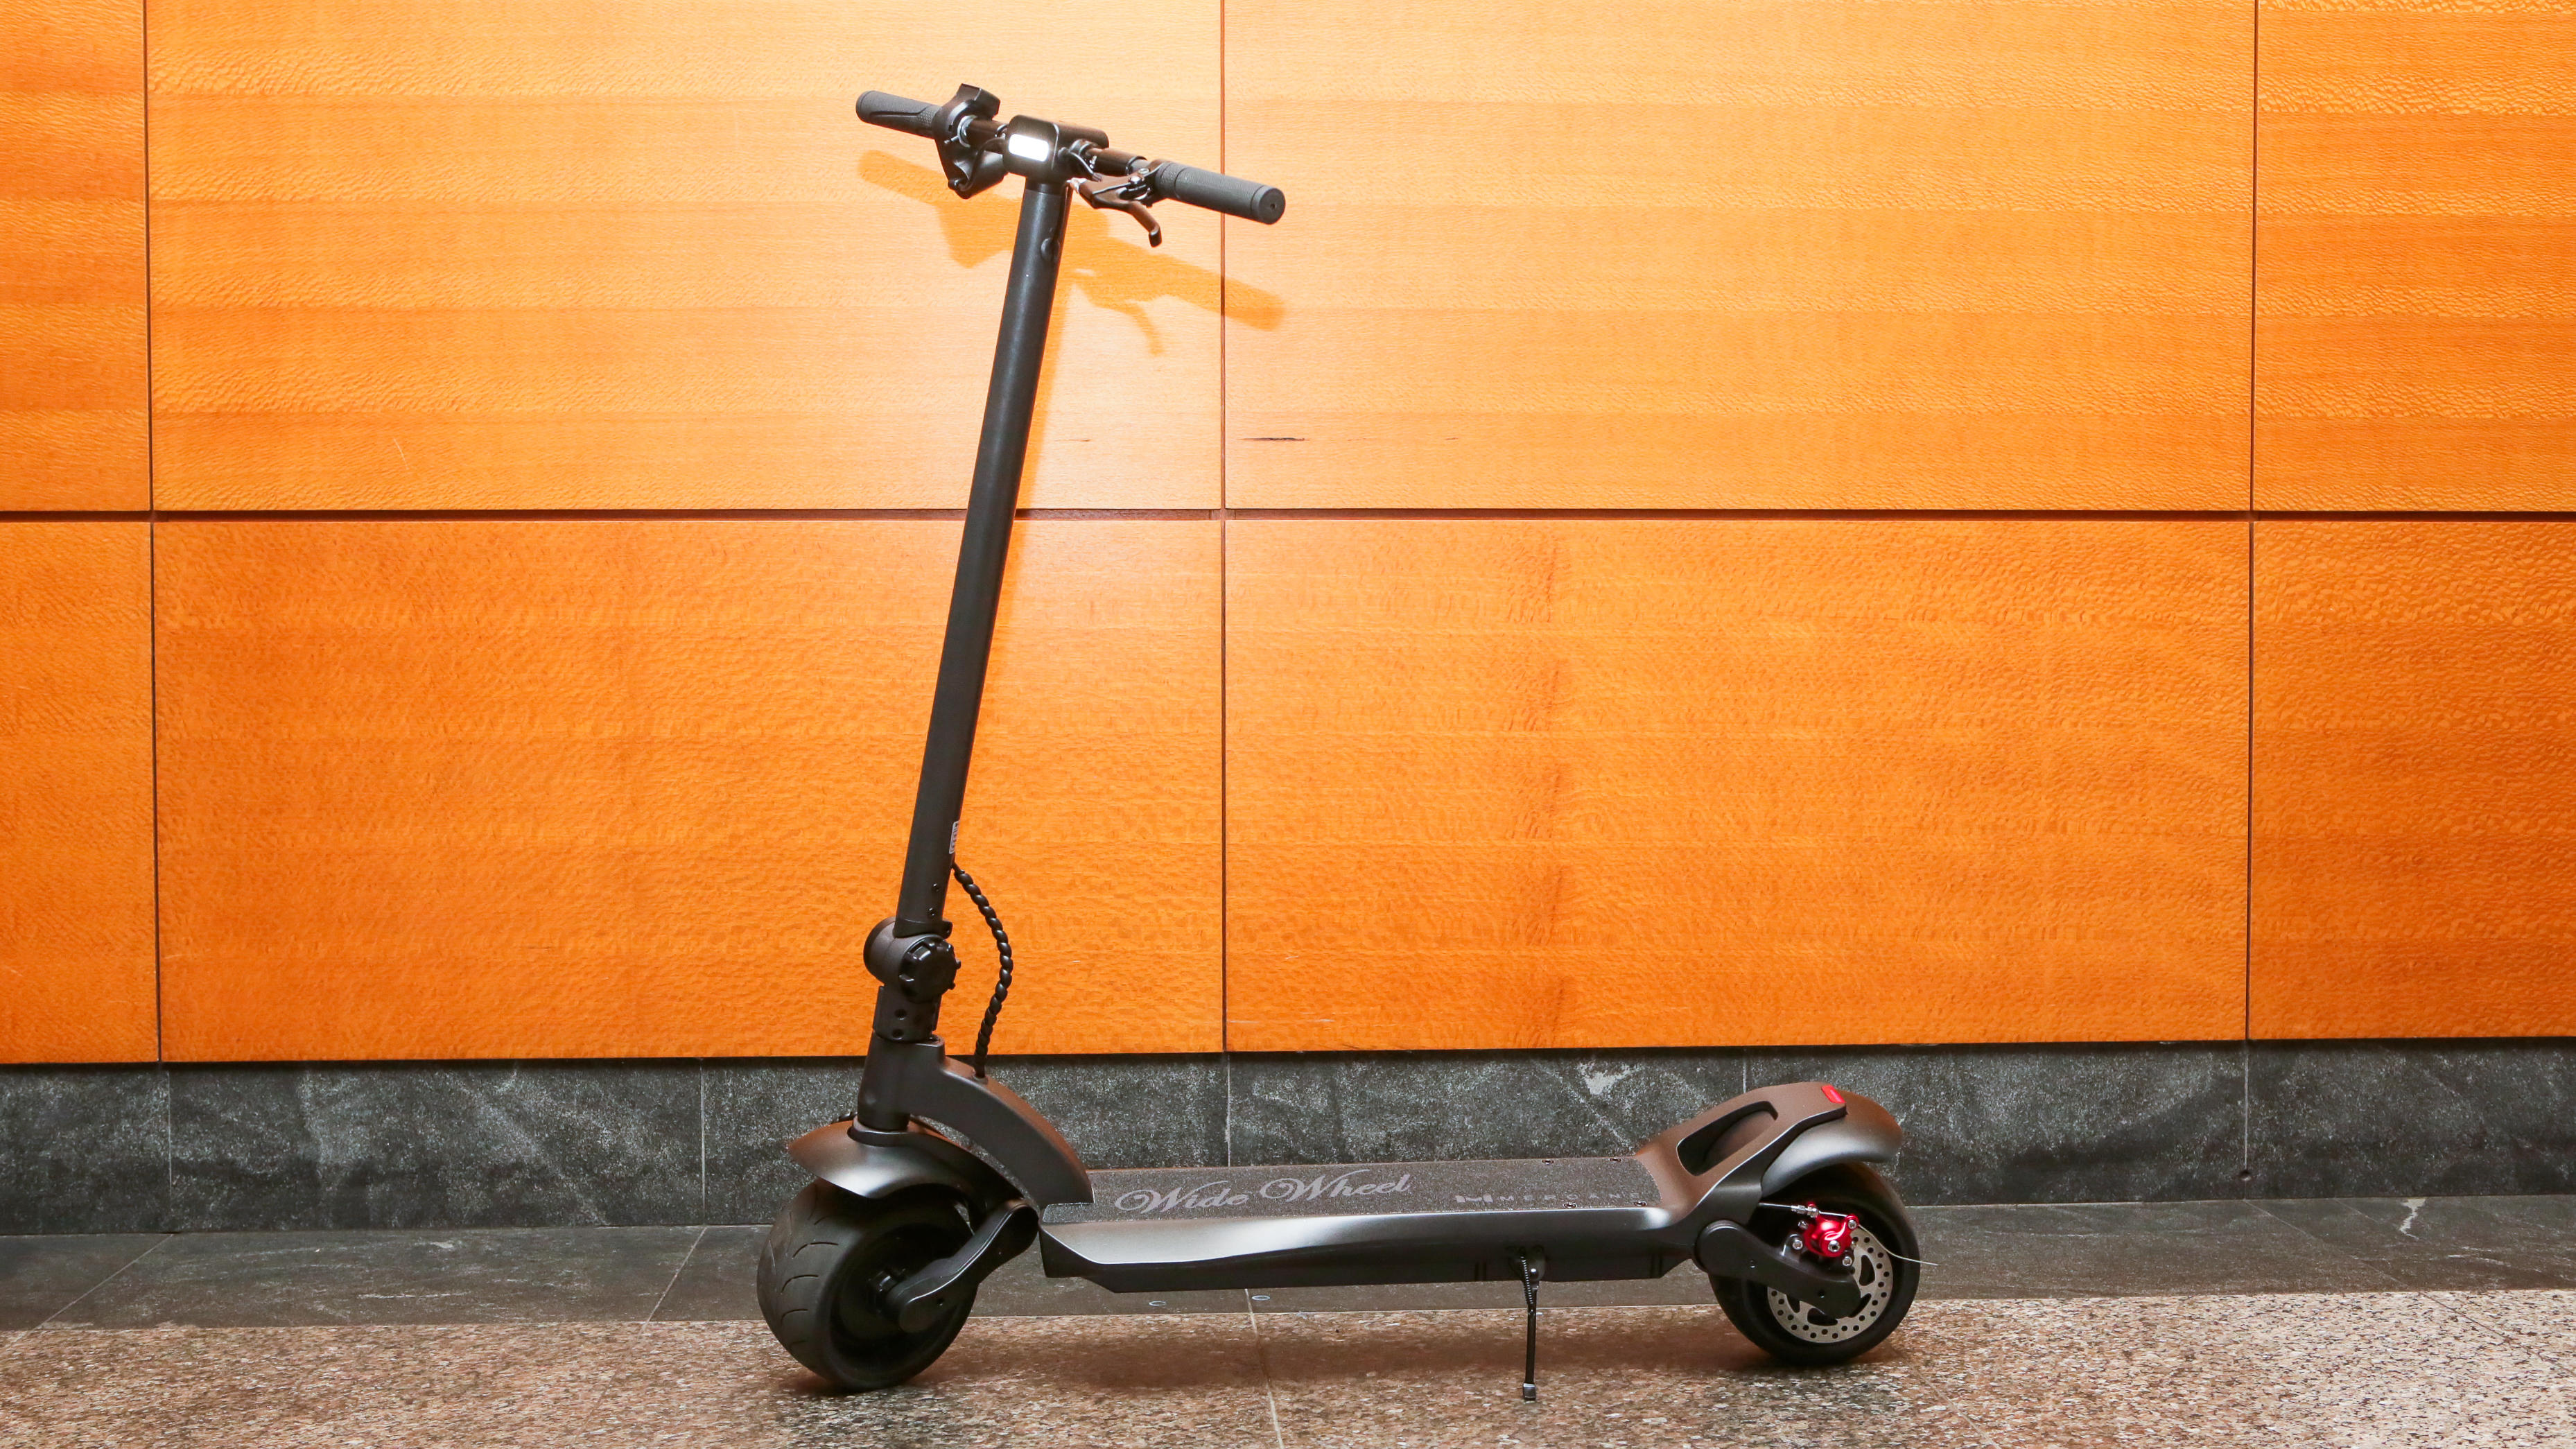 01 mercane wide wheel scooter | Best electric scooter for summer 2021 - Roadshow | The Paradise